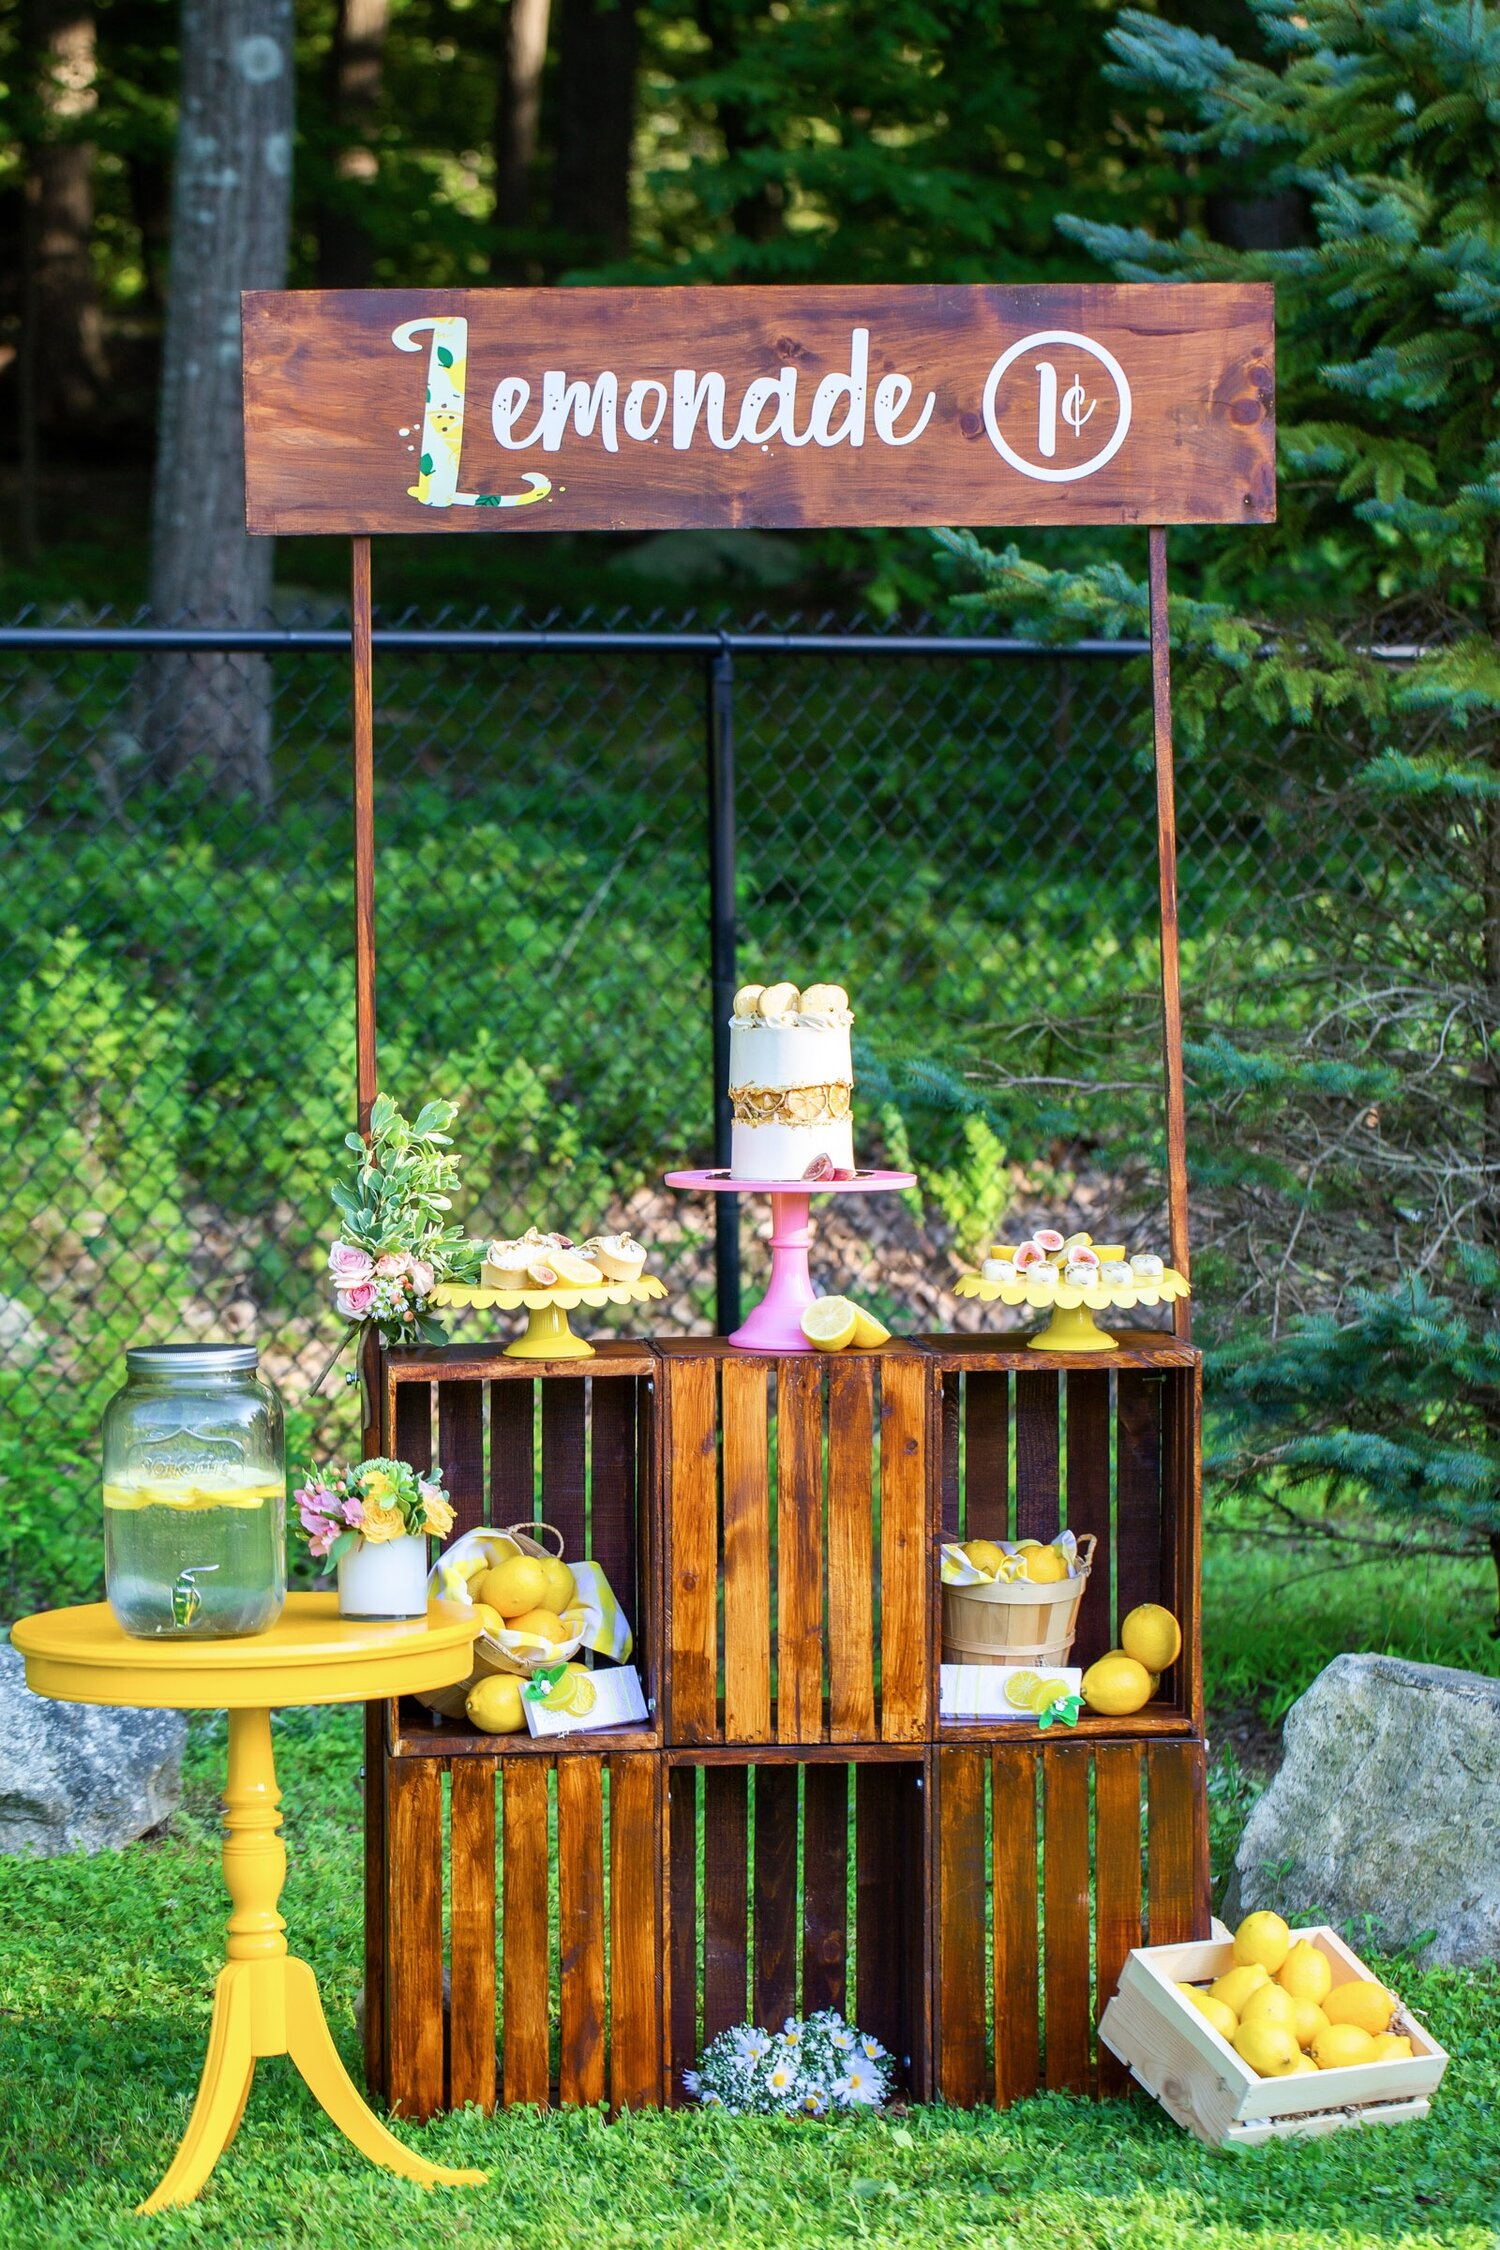 Yosi of Favors And More designed and built this wooden lemonade stand that was the perfect complement to our theme. The lemon yellow end table was from Claudia of Tie A Bow Rentals.